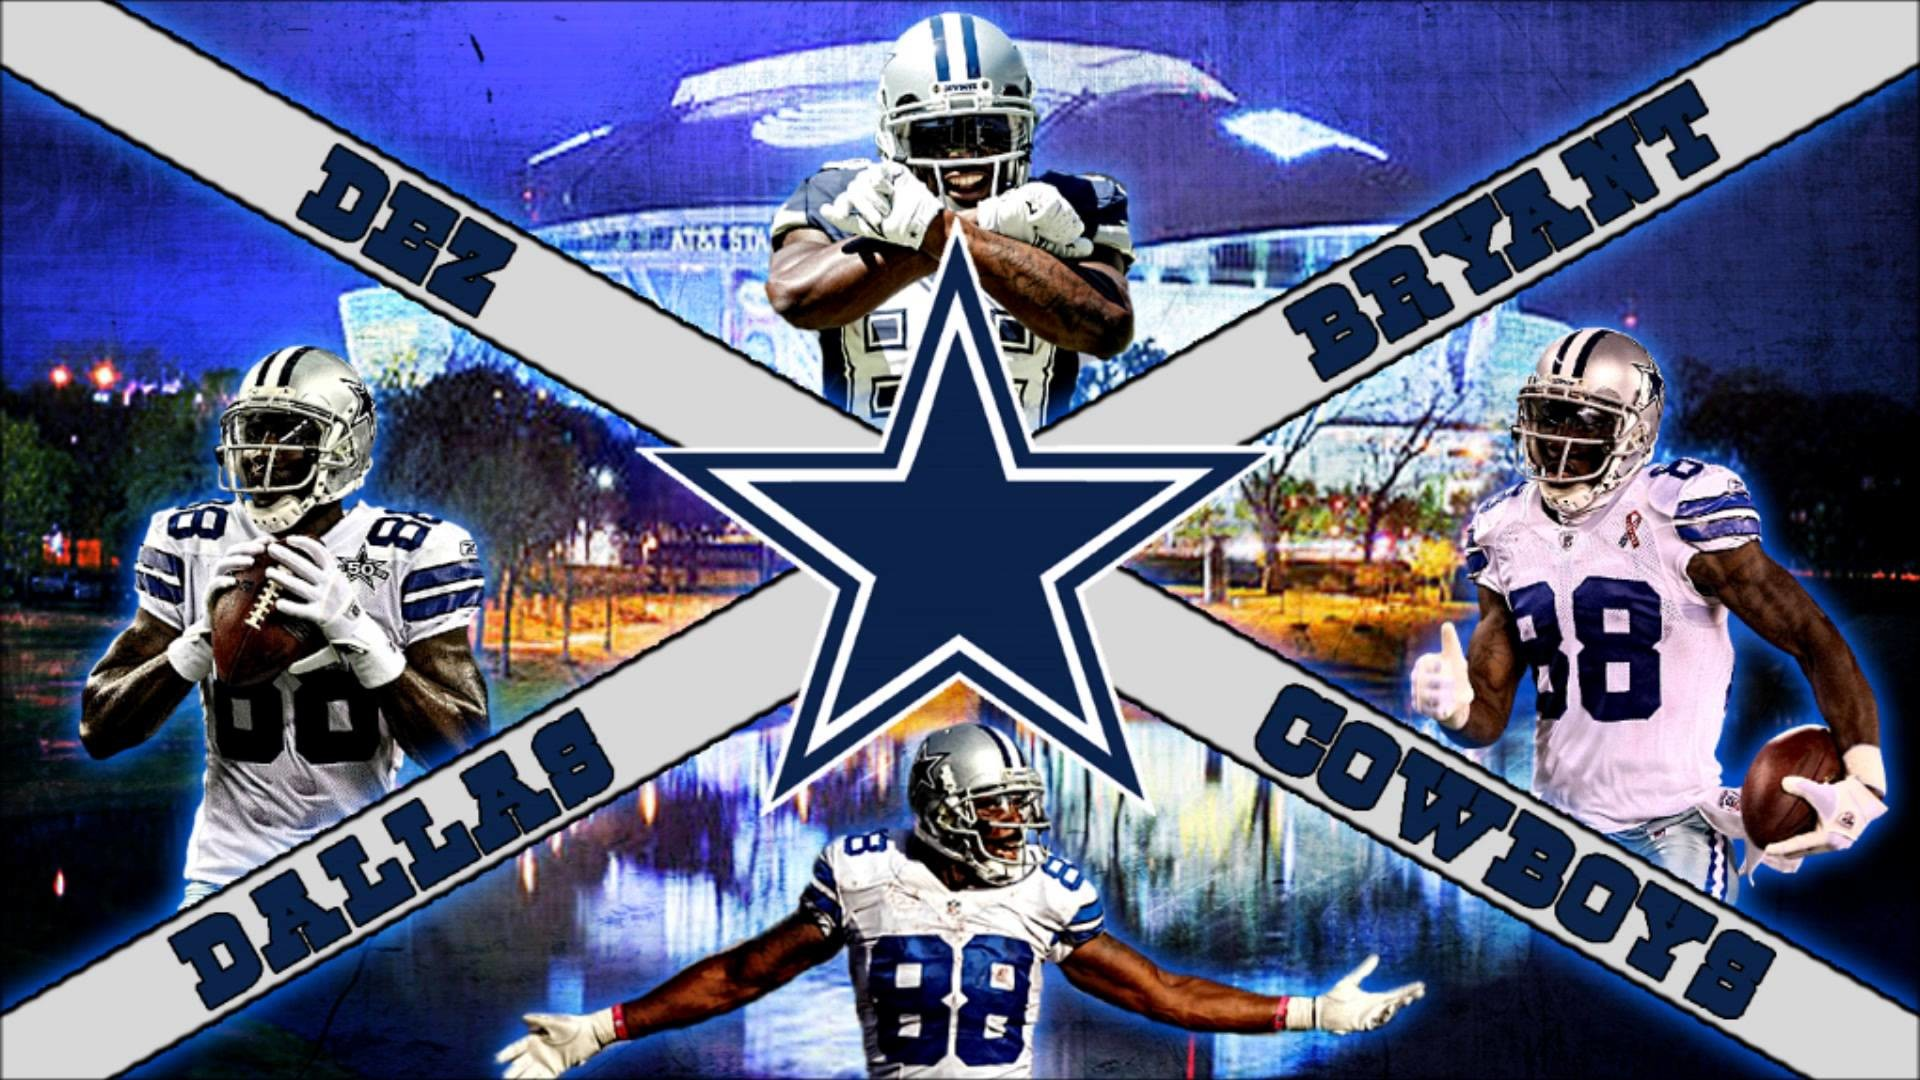 1920x1080 FREE NFL Dez Bryant Wallpaper - YouTube